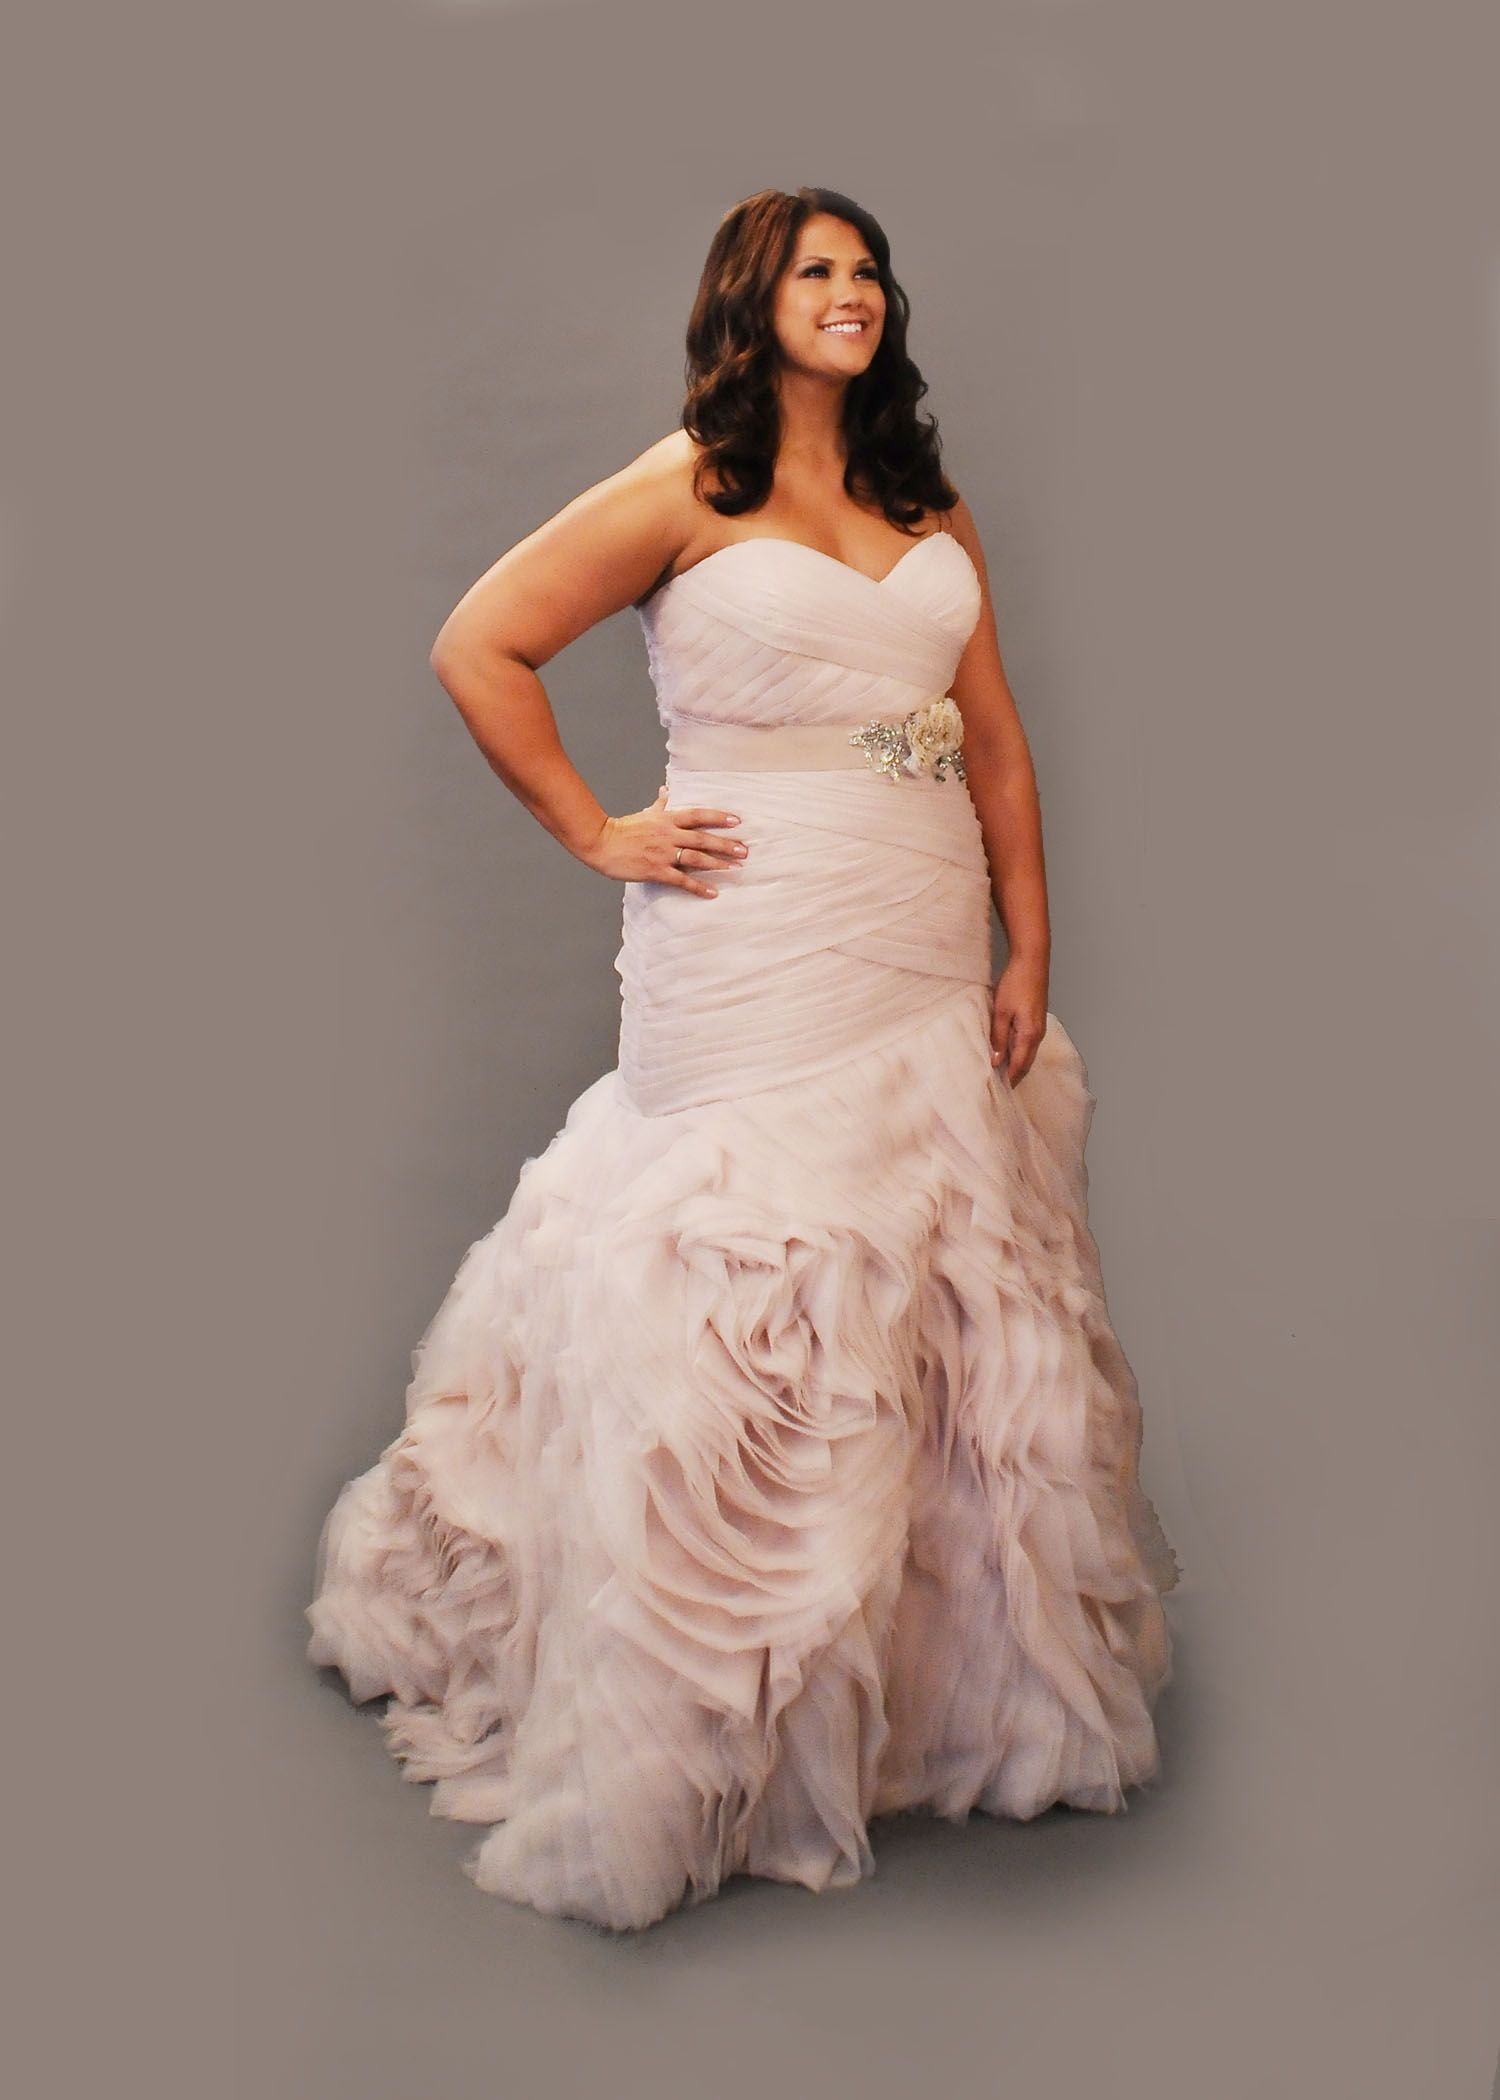 Curvy Bride, Plus Size Wedding Dress, Plus Size Fashion, Curvy ...